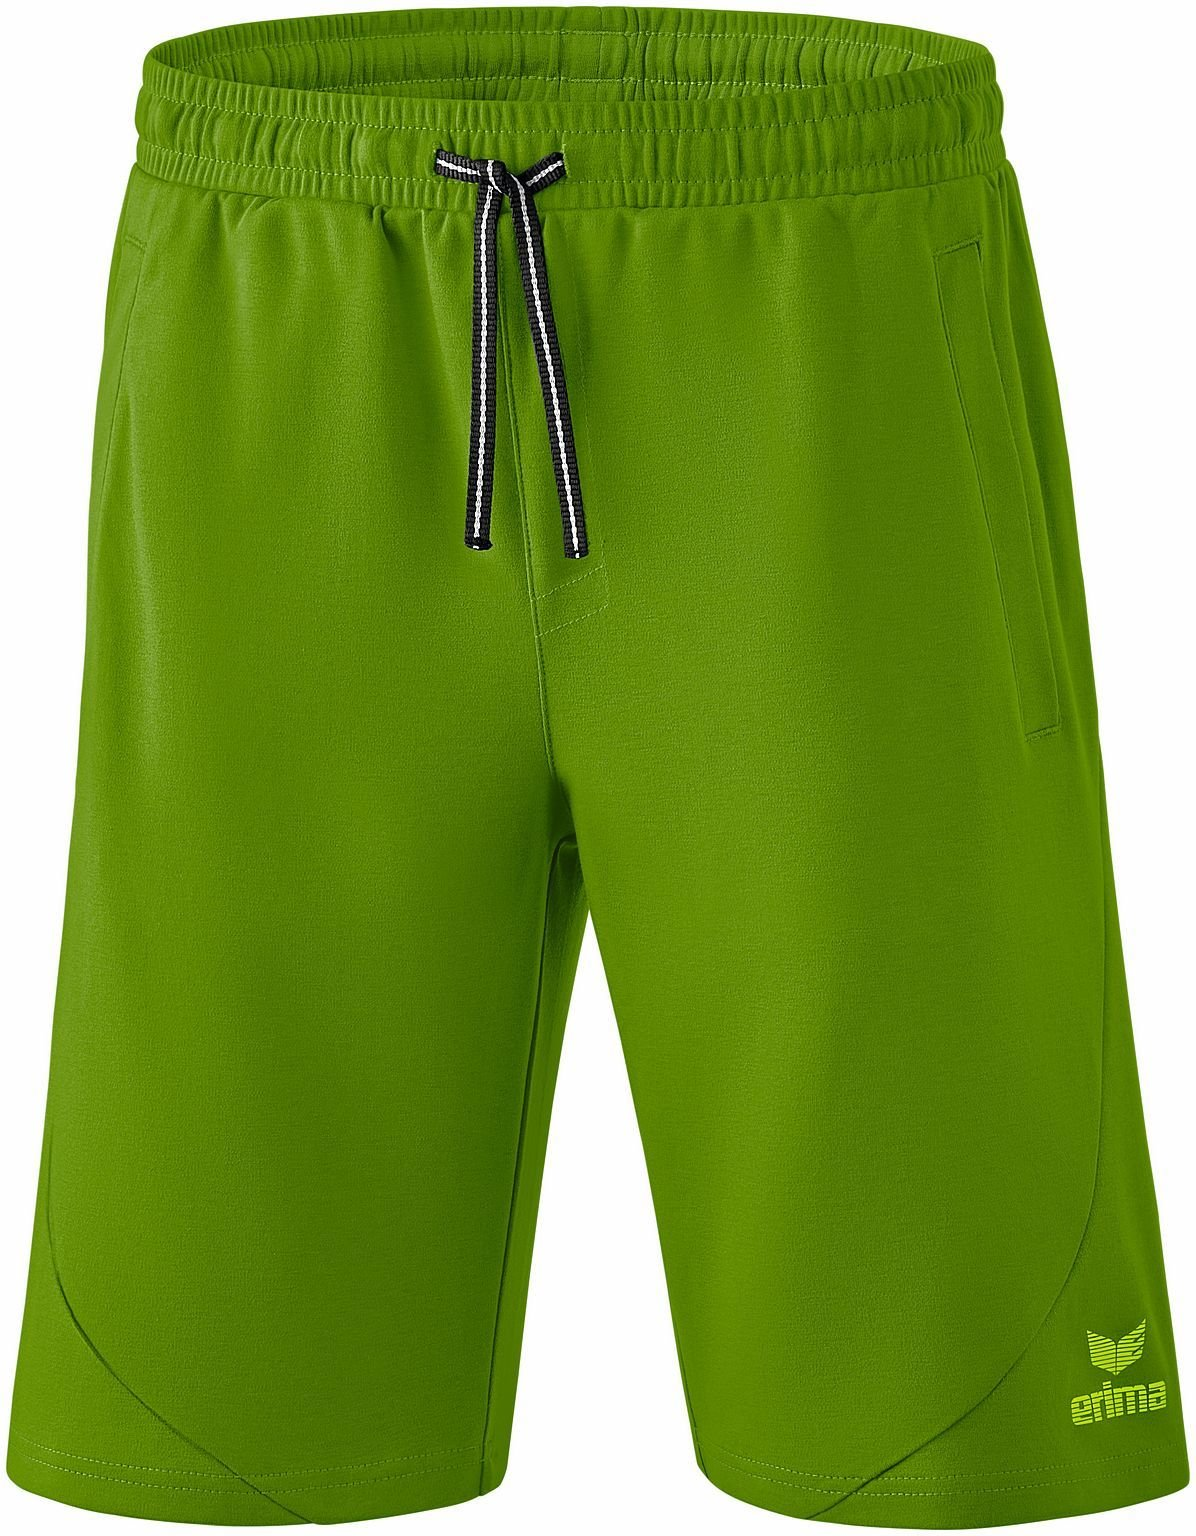 Essential SweatShorts Herren Kinder